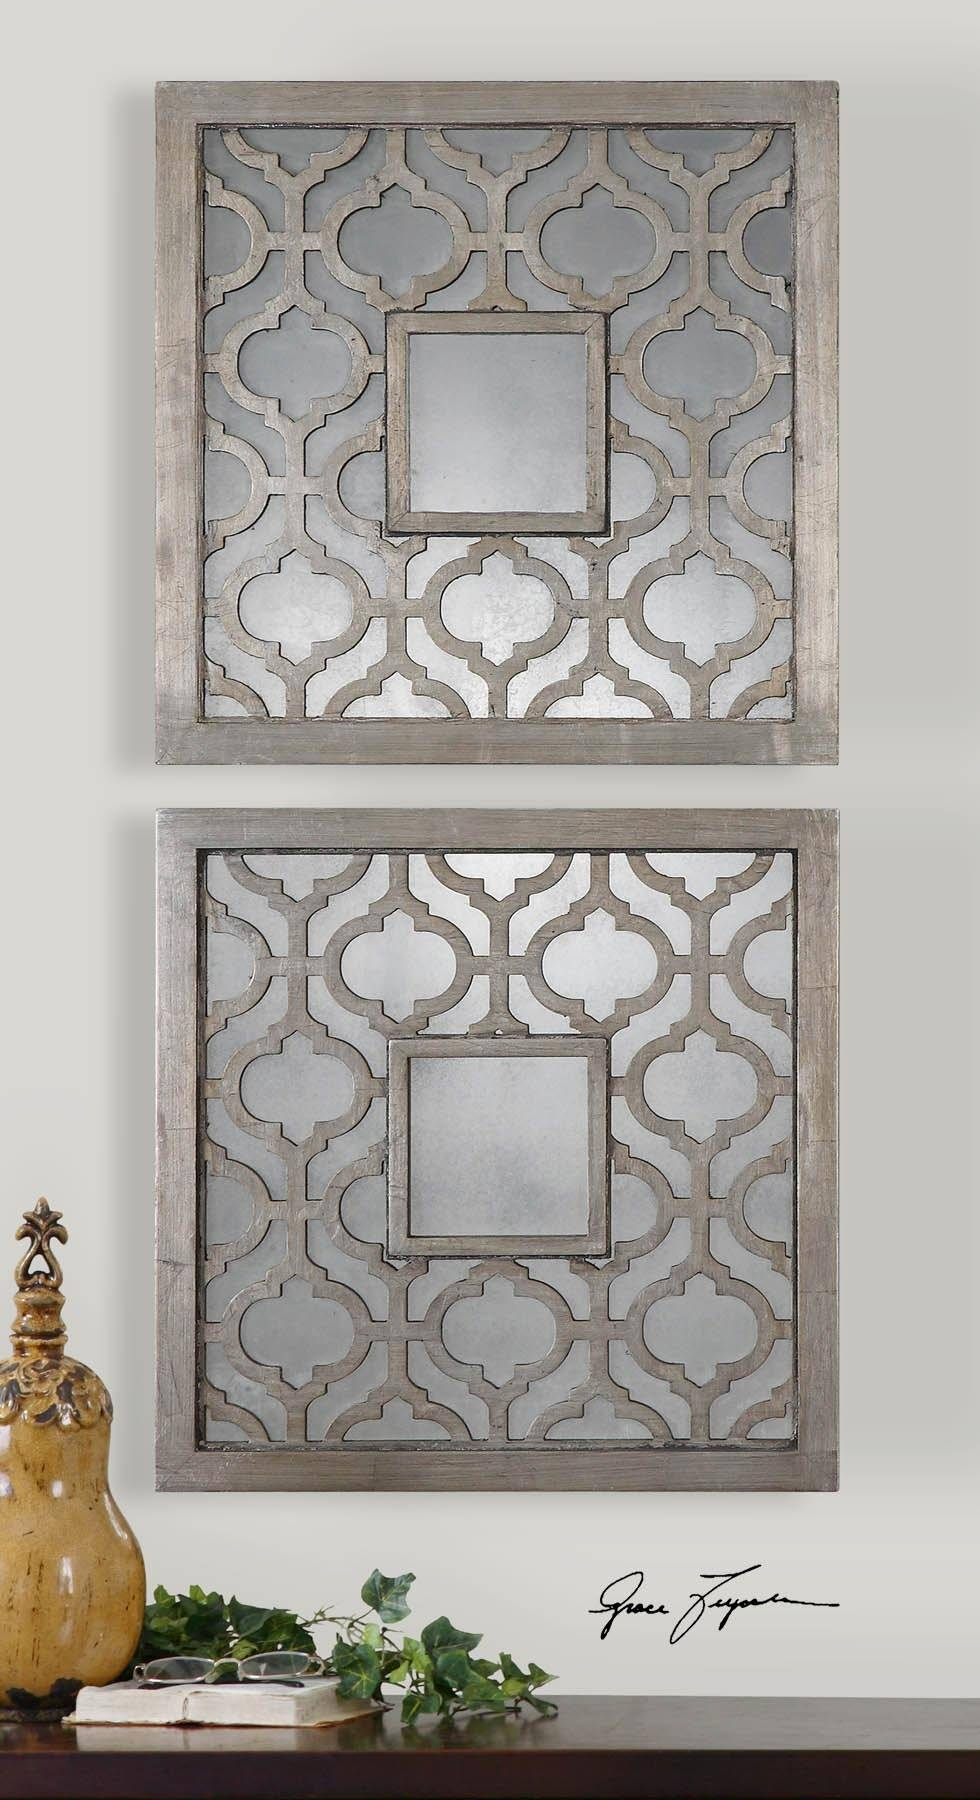 Wall Art Designs: Dimensional Wall Art Moroccan Trellis Antiqued Pertaining To Most Current Metal Framed Wall Art (View 19 of 20)